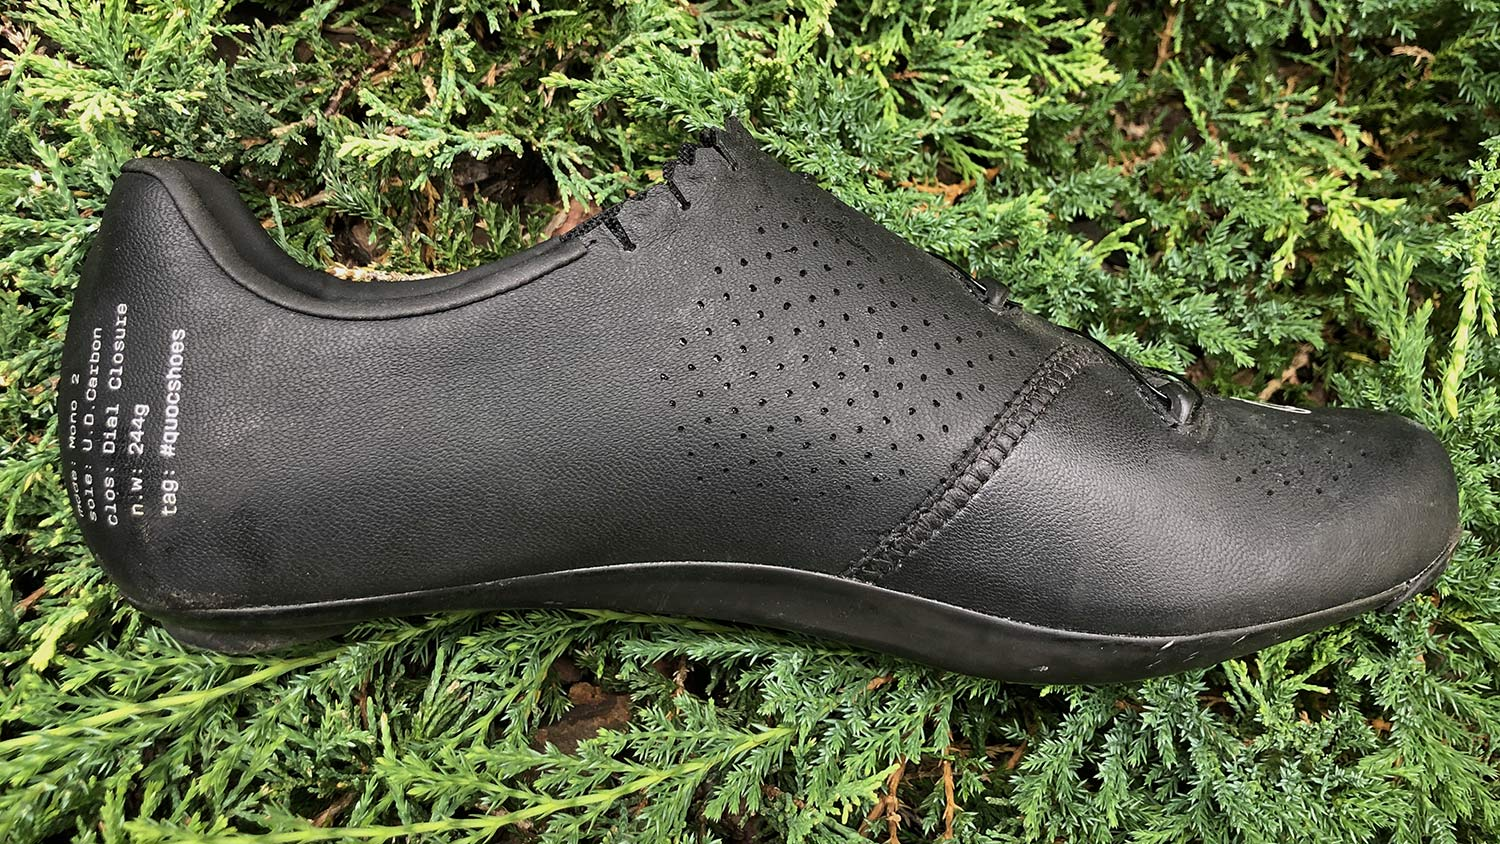 Quoc Mono II lightweight carbon-soled road cycling shoes Review,simple inside